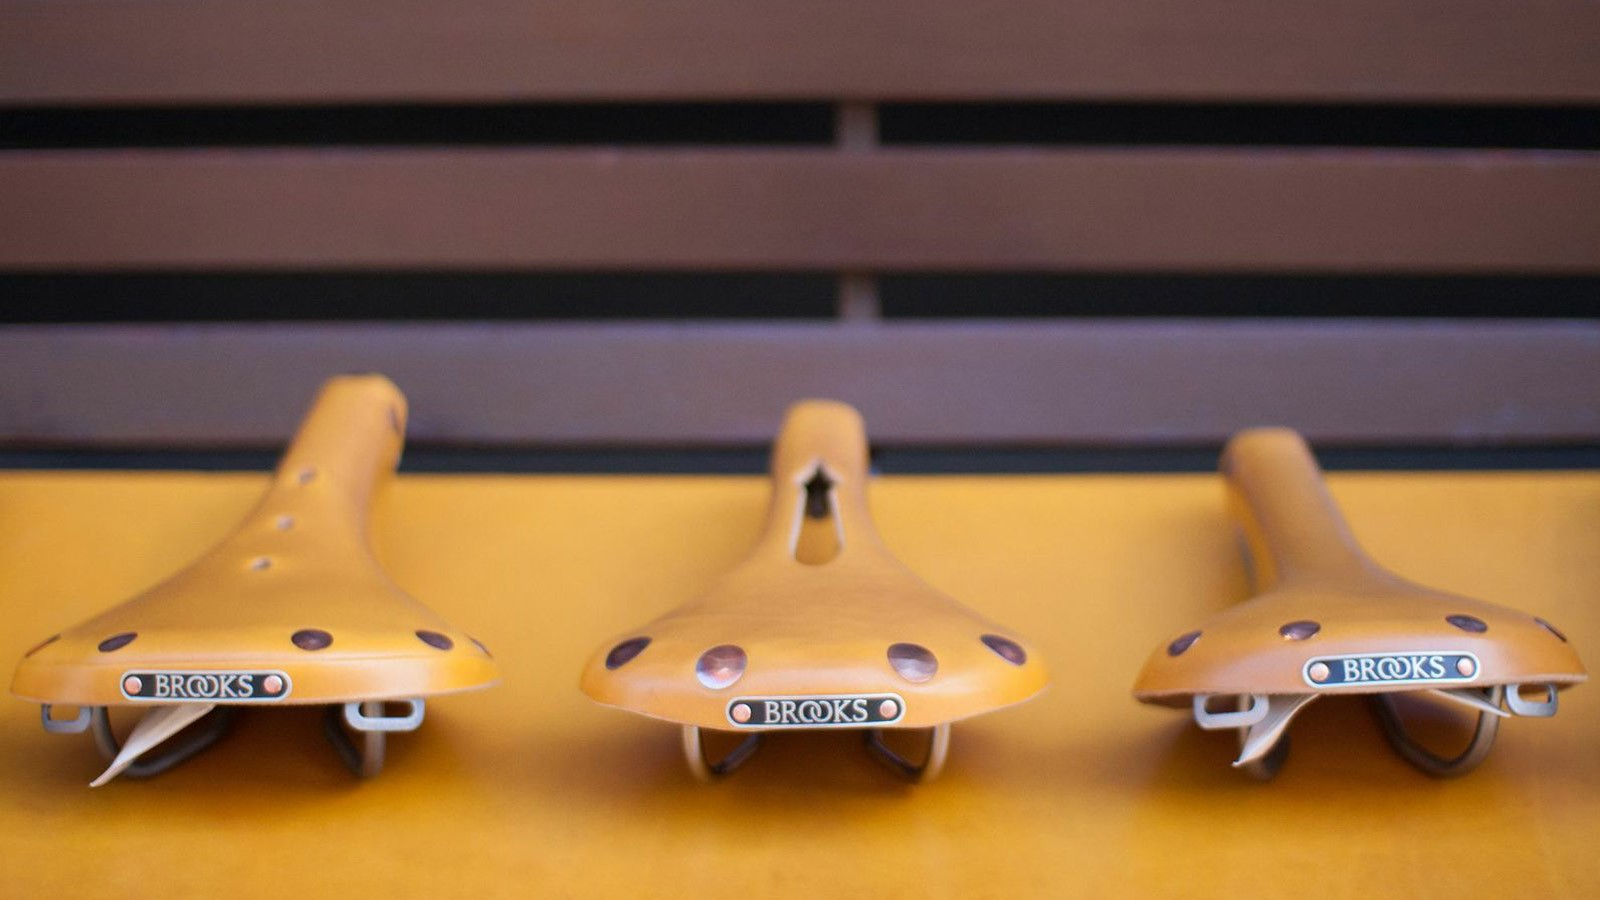 Brooks England has produced a special range of Ochre saddles to mark the Tour